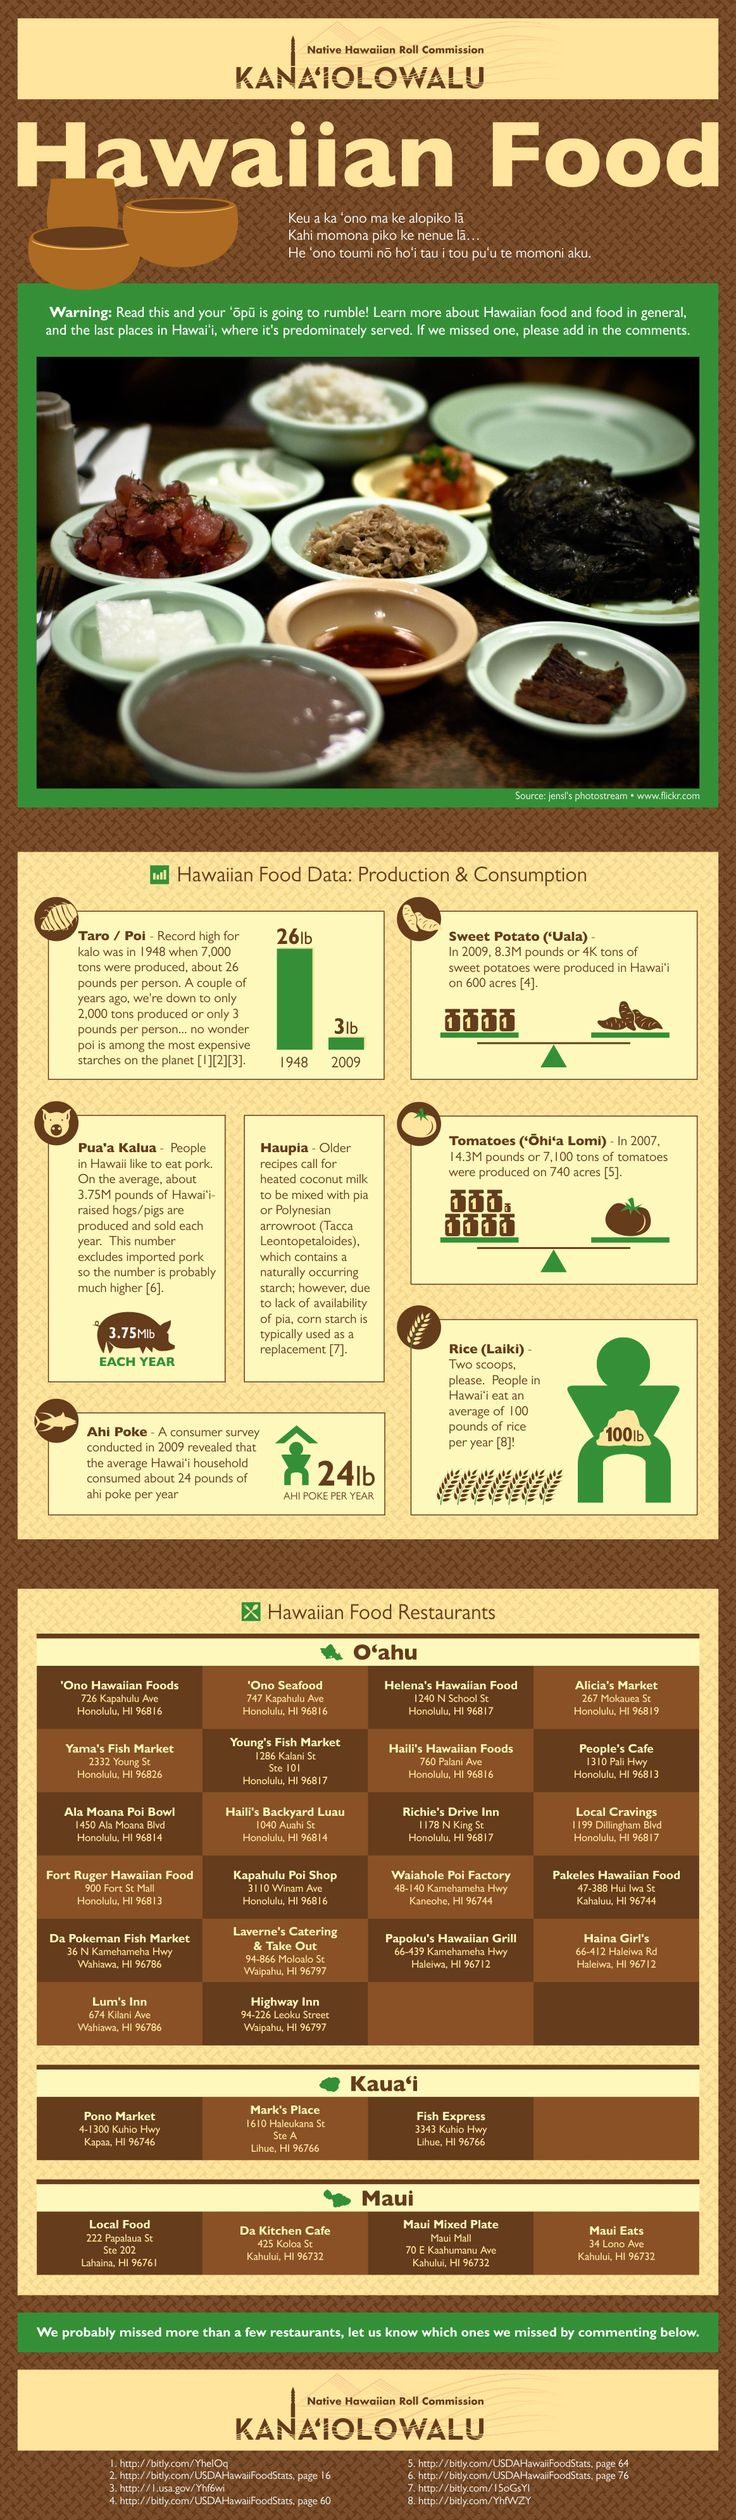 An Infographic about Hawaiian Food. Includes 3 great restaurants on Kauai.